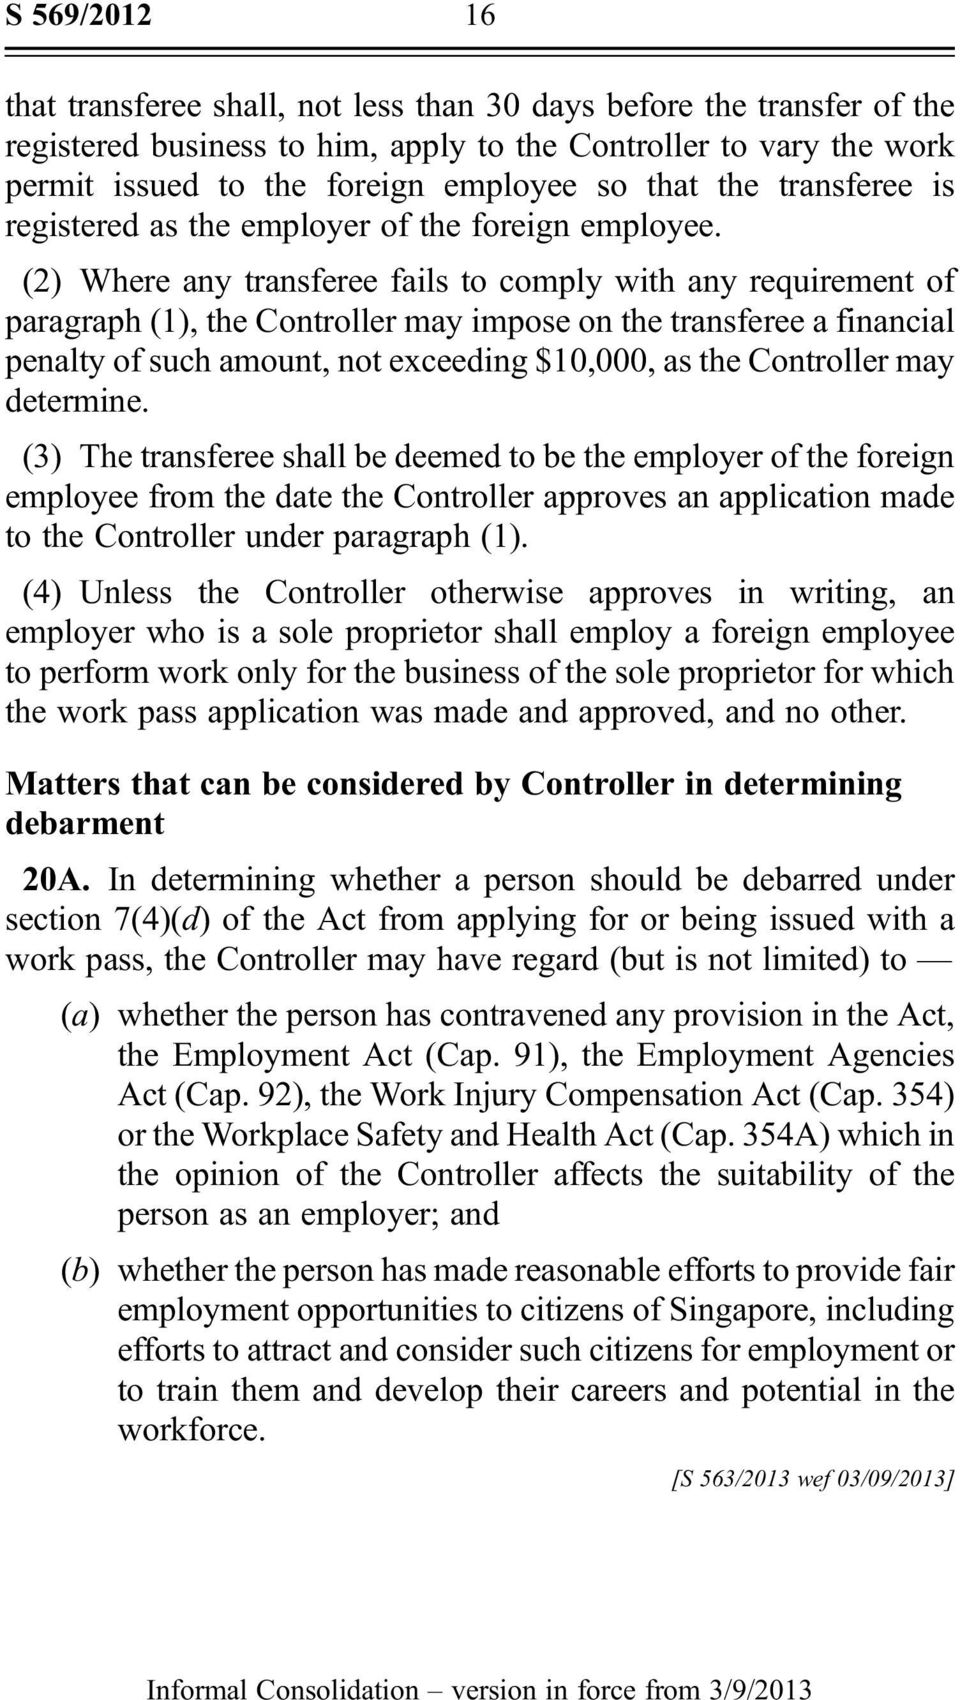 (2) Where any transferee fails to comply with any requirement of paragraph (1), the Controller may impose on the transferee a financial penalty of such amount, not exceeding $10,000, as the